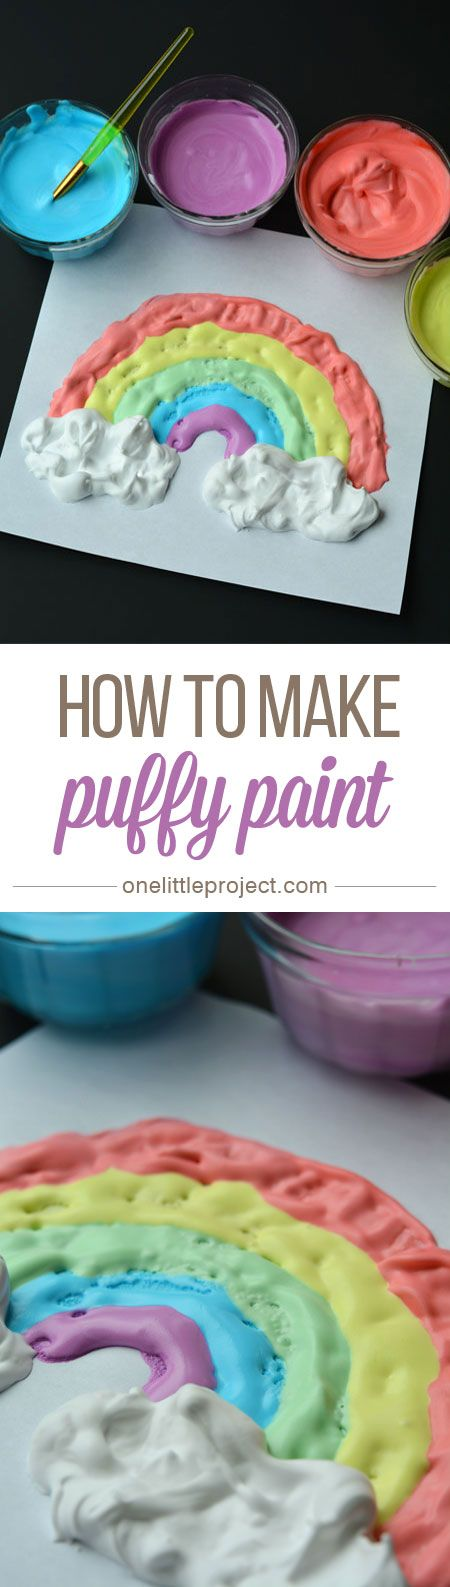 How to Make Puffy Paint - This was such a fun and EASY craft for the kids to do! They loved the texture and had so much fun mixing everything together! // For more family resources visit www.tots-tweens.com! :)